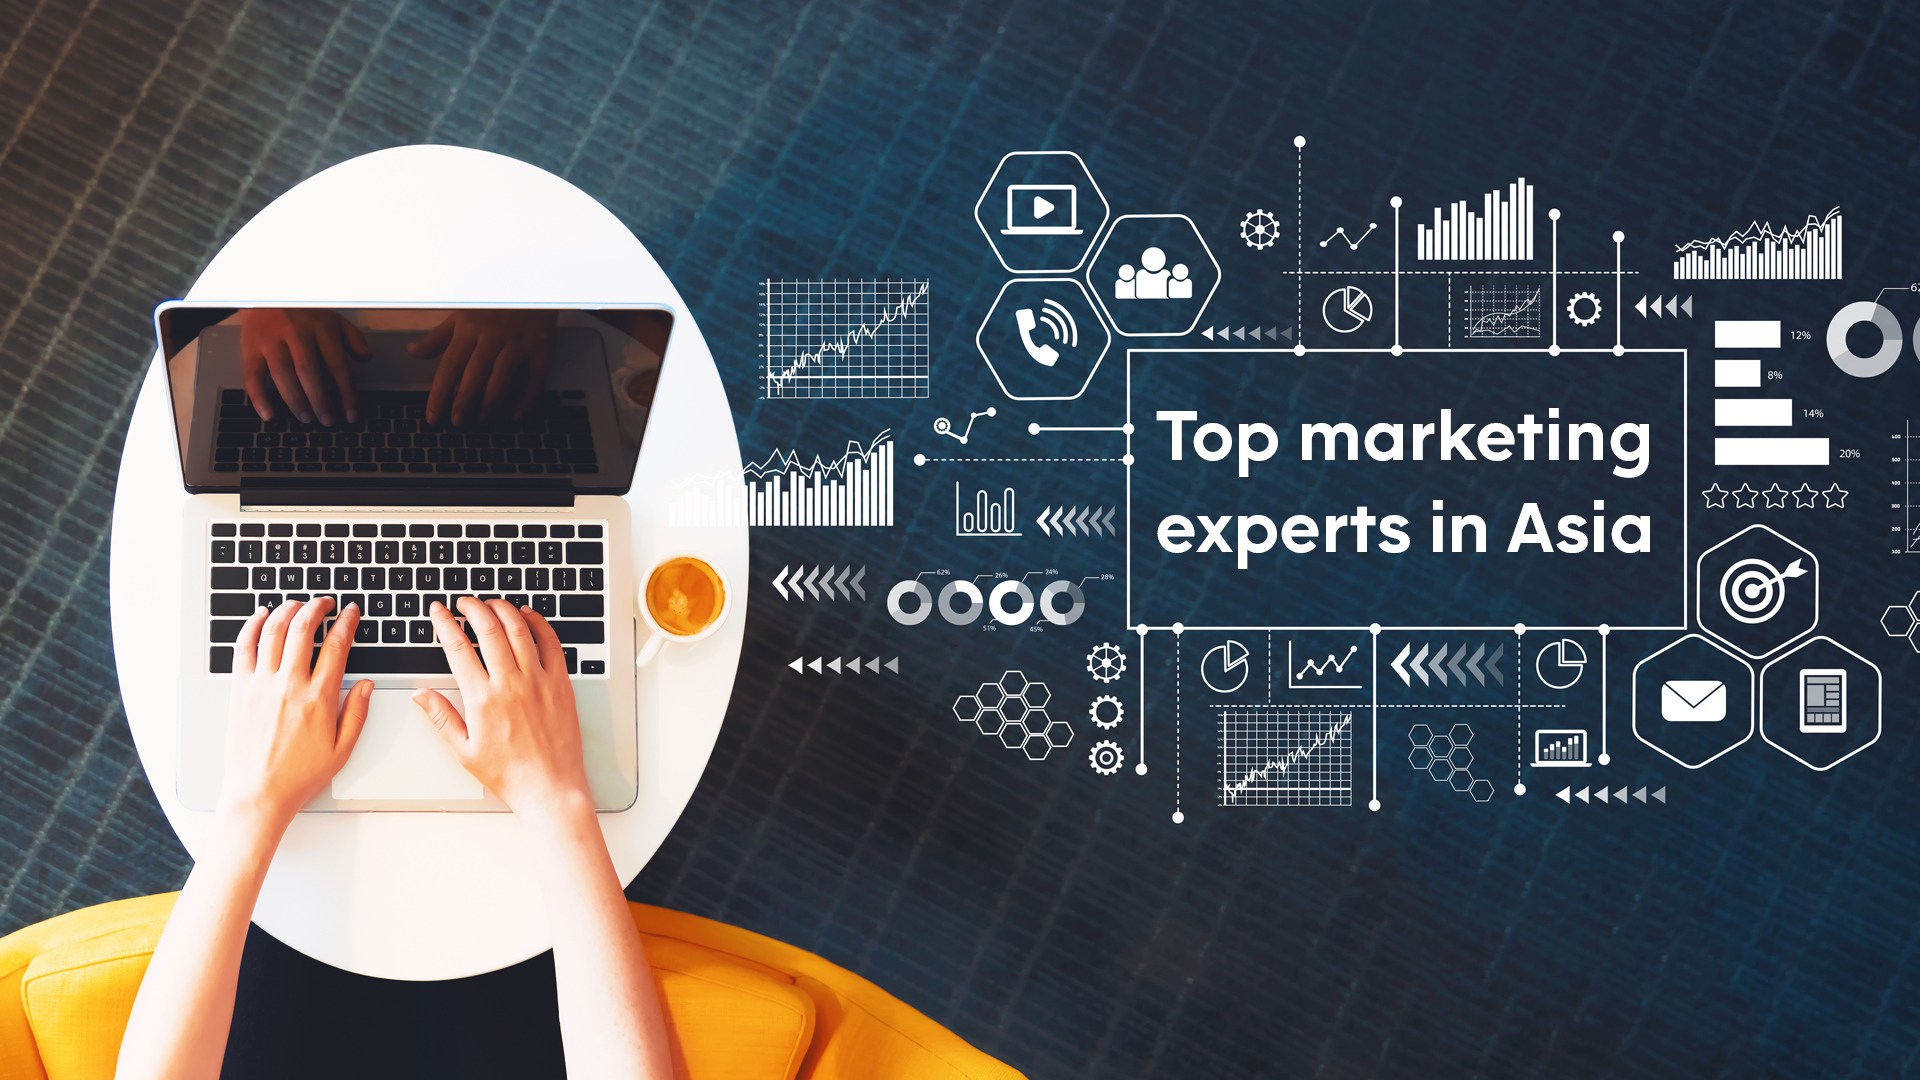 Top marketing experts in Asia